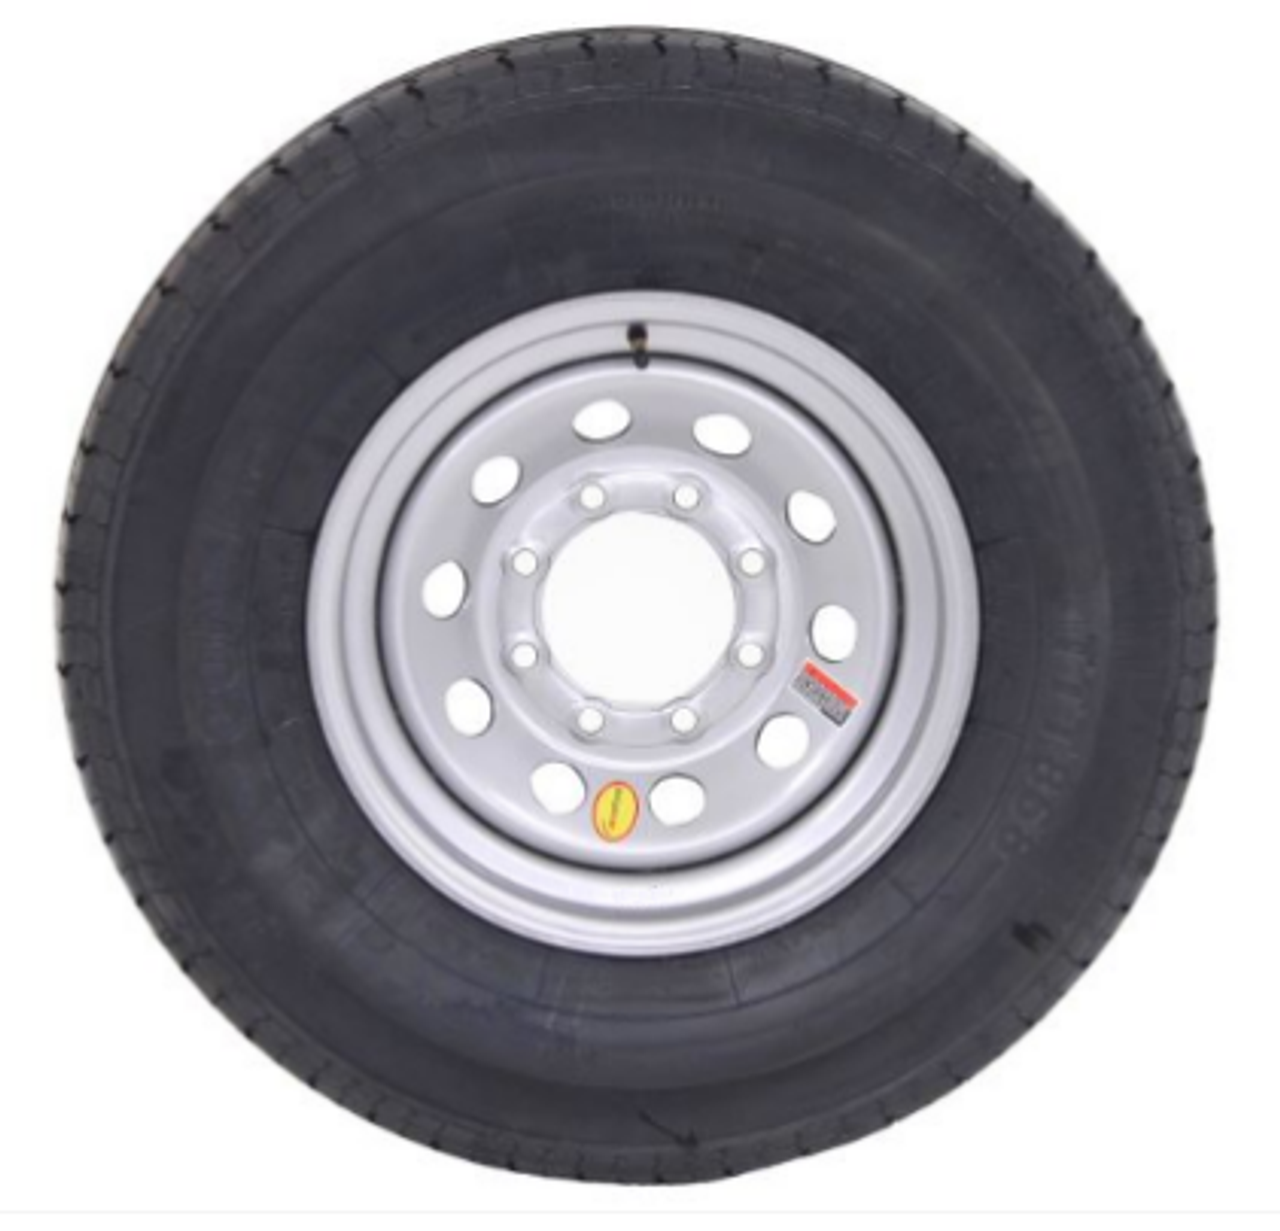 "CONTENDER TIRE, ST235/80R16 10 PLY Contender Radial Trailer Tire mounted on 16"" silver mod wheel 8 on 6.5"